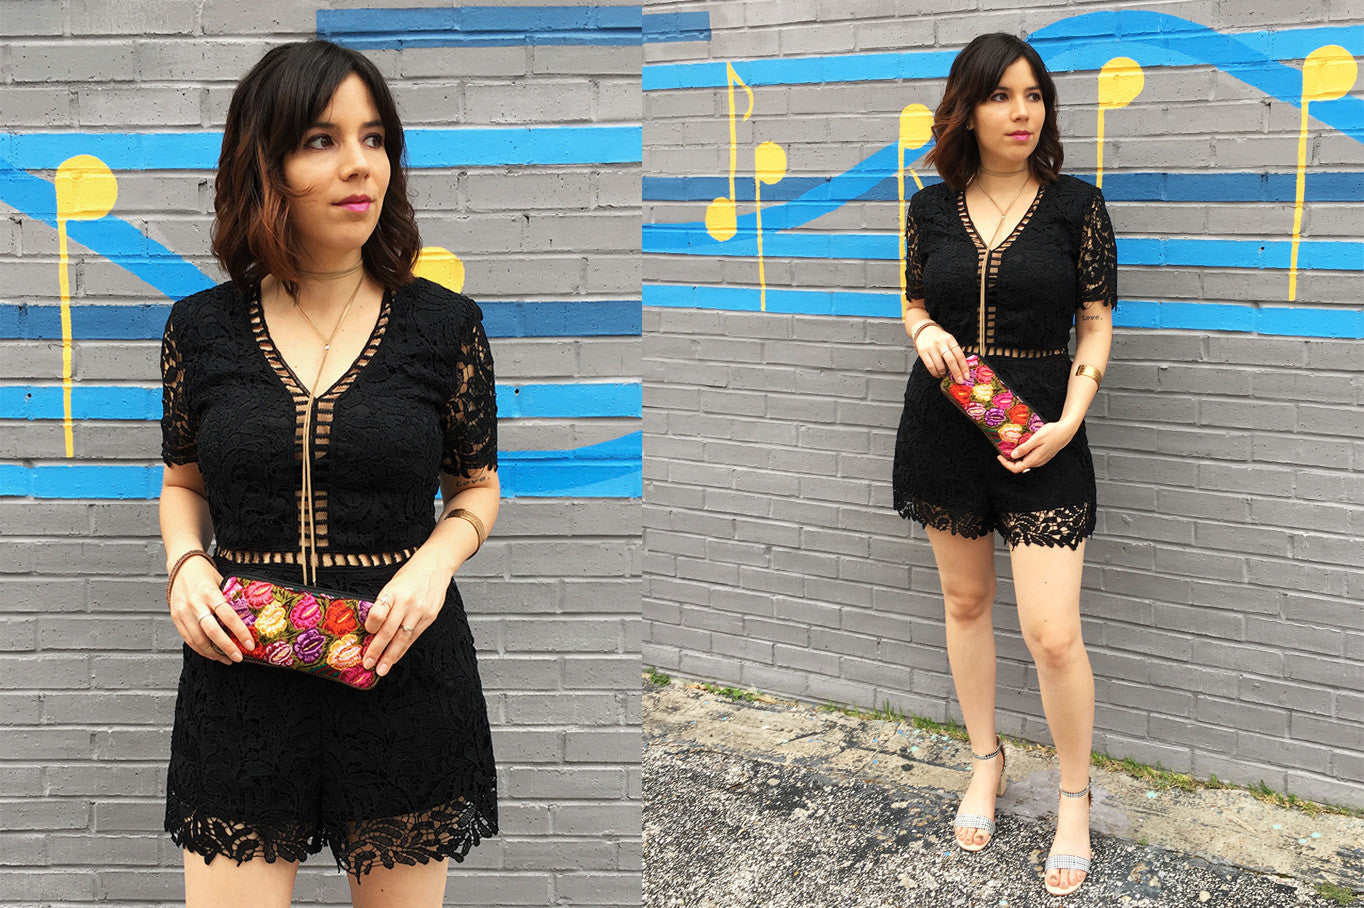 ShopMucho owner models women's black lace romper for a night out in Midtown Memphis